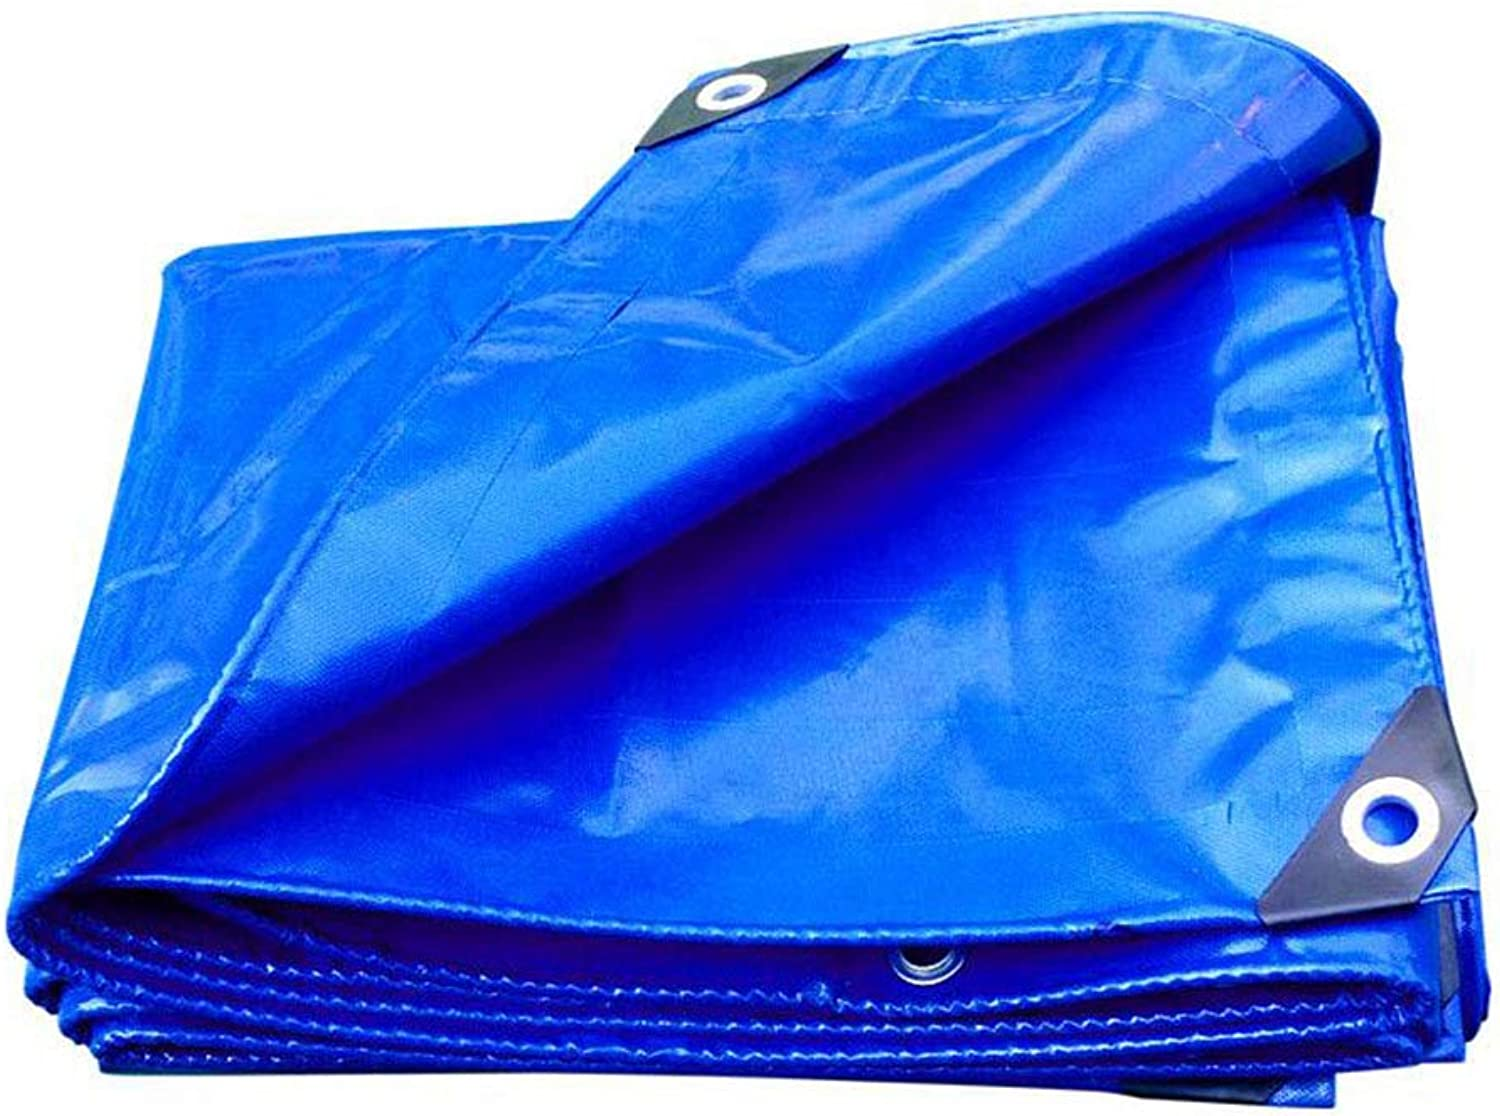 AO blueee PVC Rainproof Versatile Tarp with Eyelets for Covering Flowerbeds Predecting Furniture Camping Weather Predection (Size   5x7M)